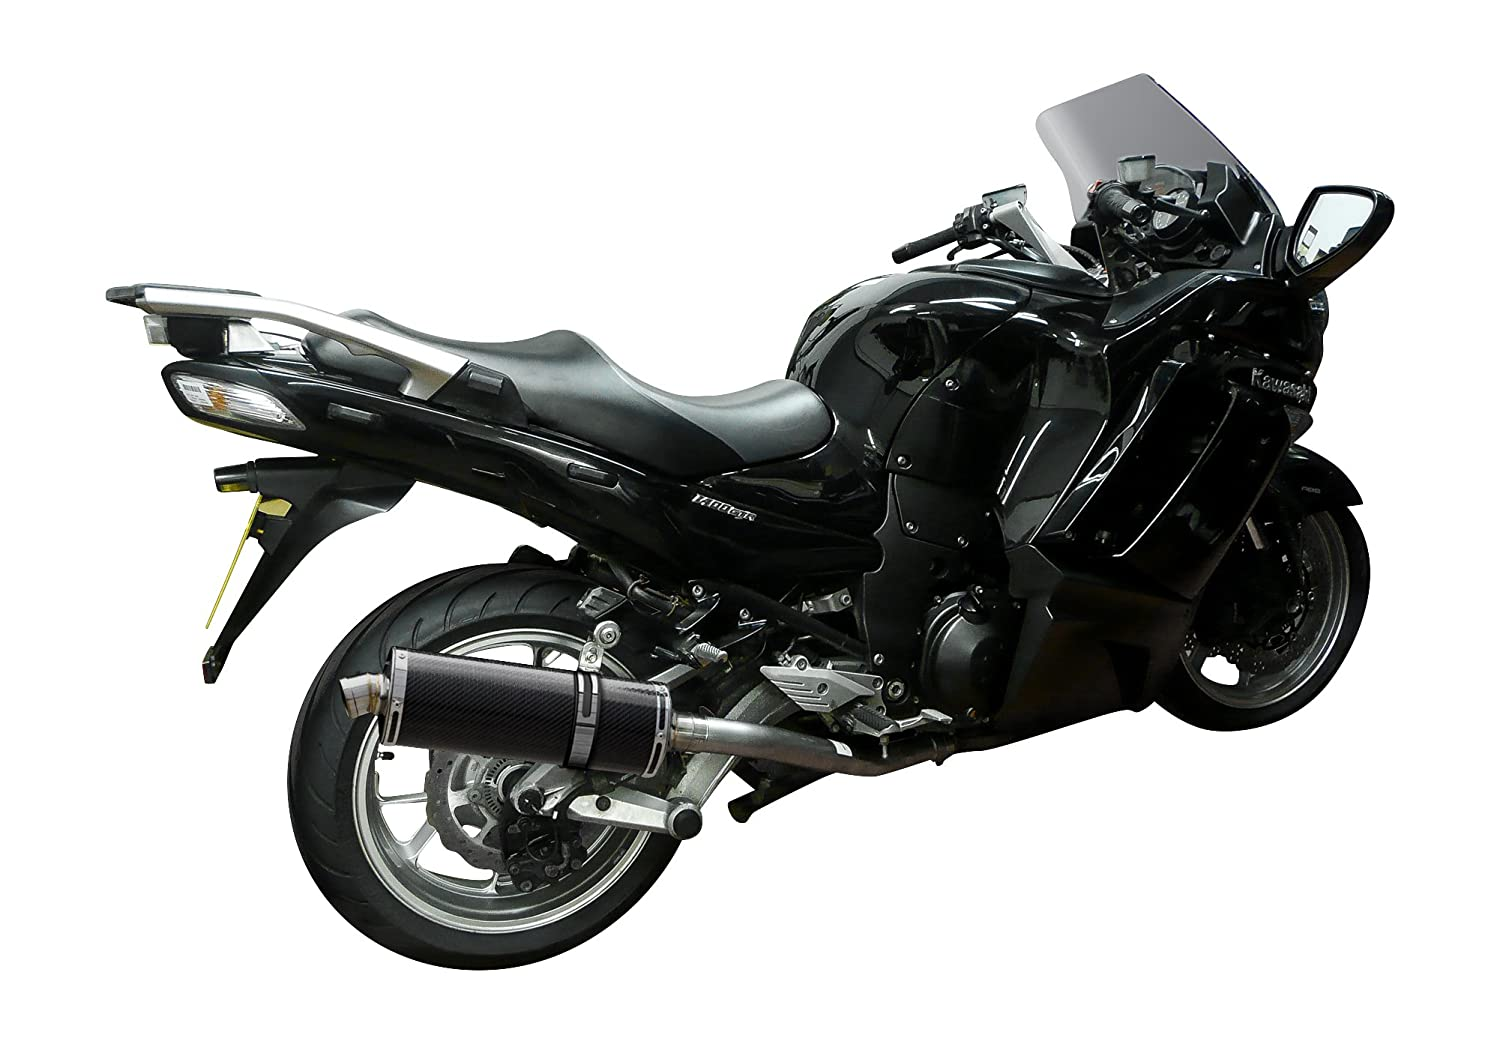 Delkevic Aftermarket Slip On Kawasaki Concours 14 GTR1400 Stubby 14 Carbon Fiber Oval Muffler Exhaust 08-19